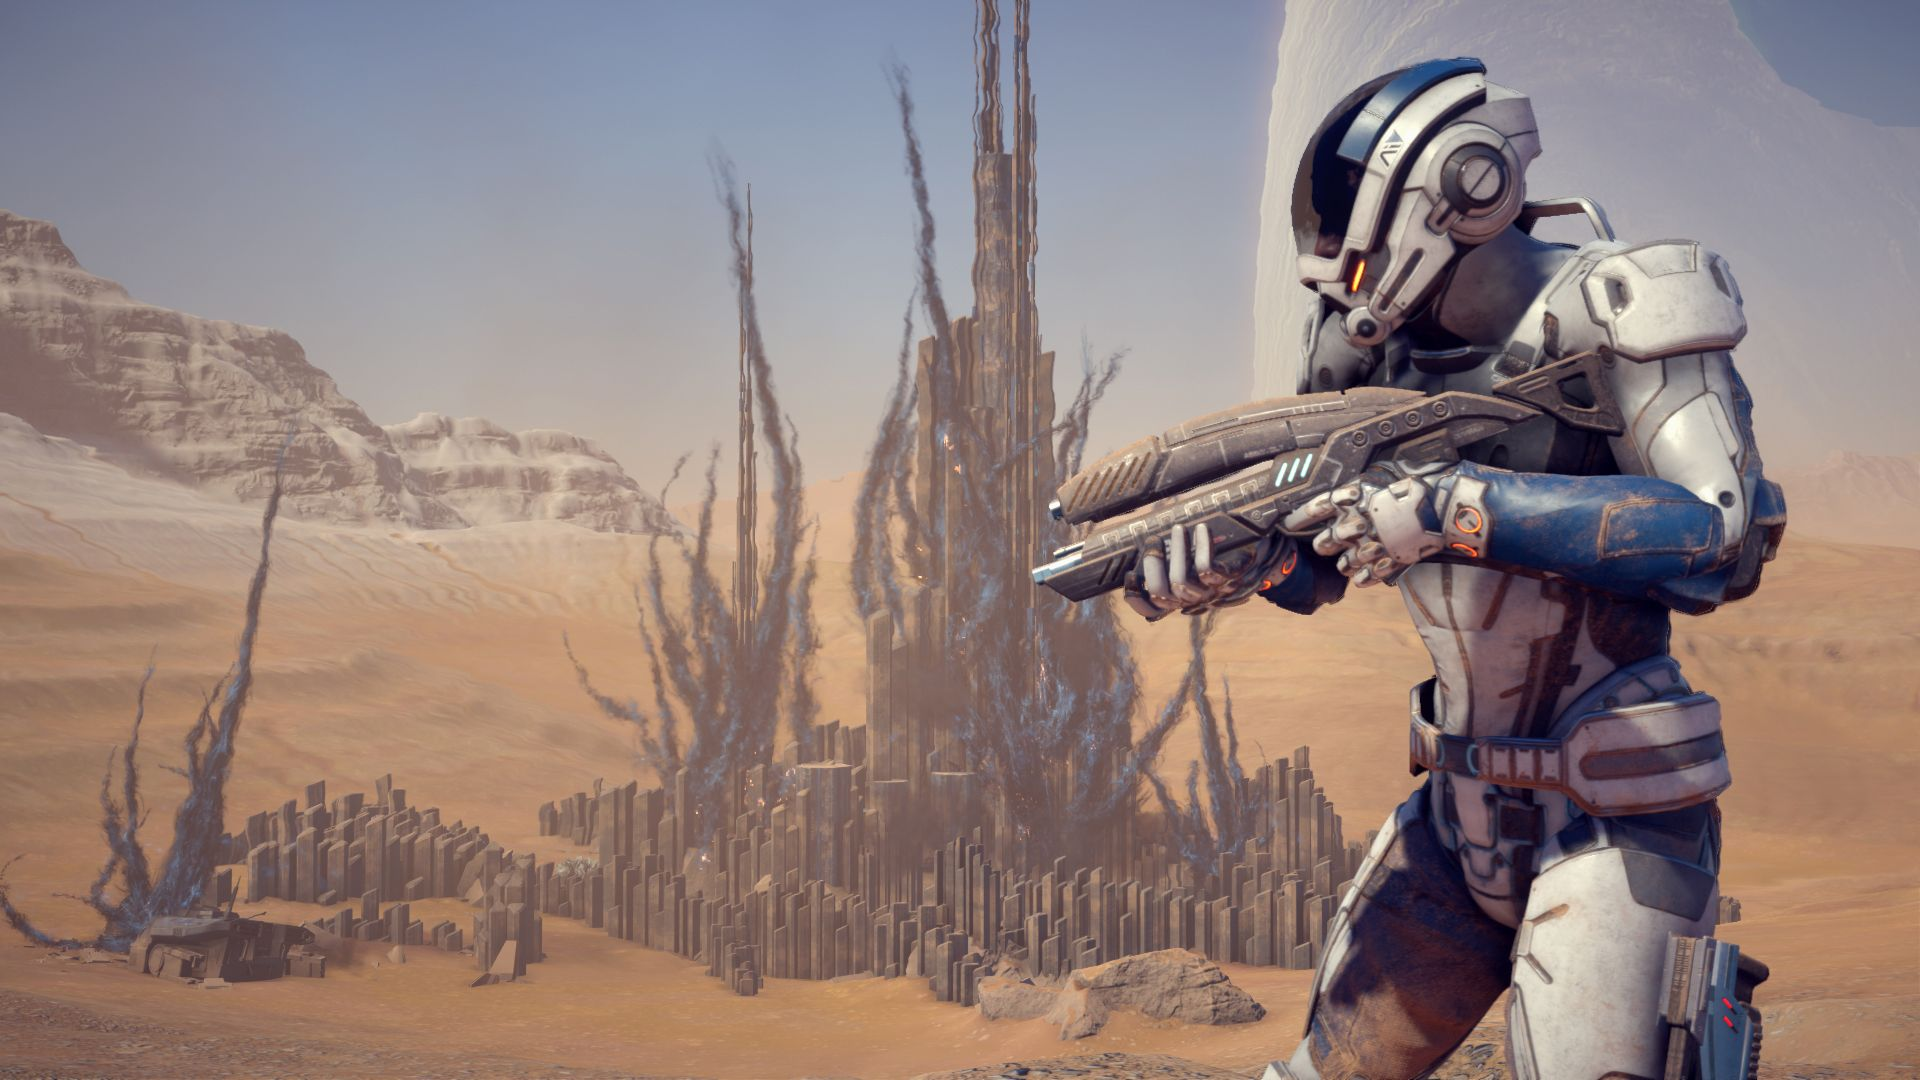 Mass Effect Andromeda And Dead Space 3 Coming To Ea Access Soon